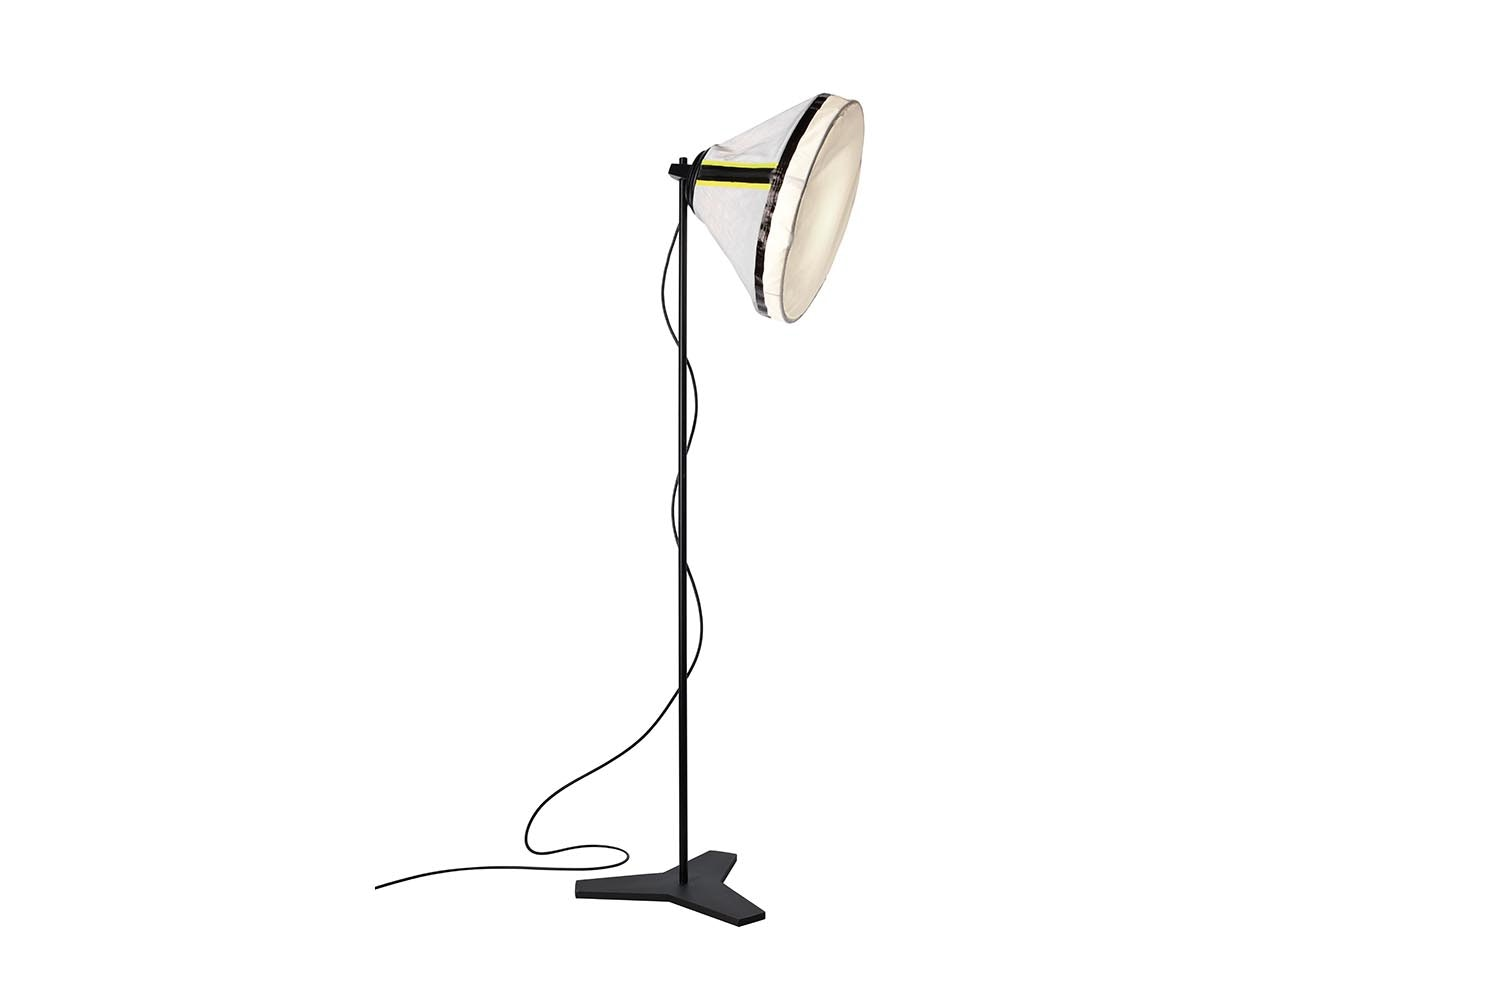 Drumbox Floor Lamp by Successful Living from DIESEL for Foscarini